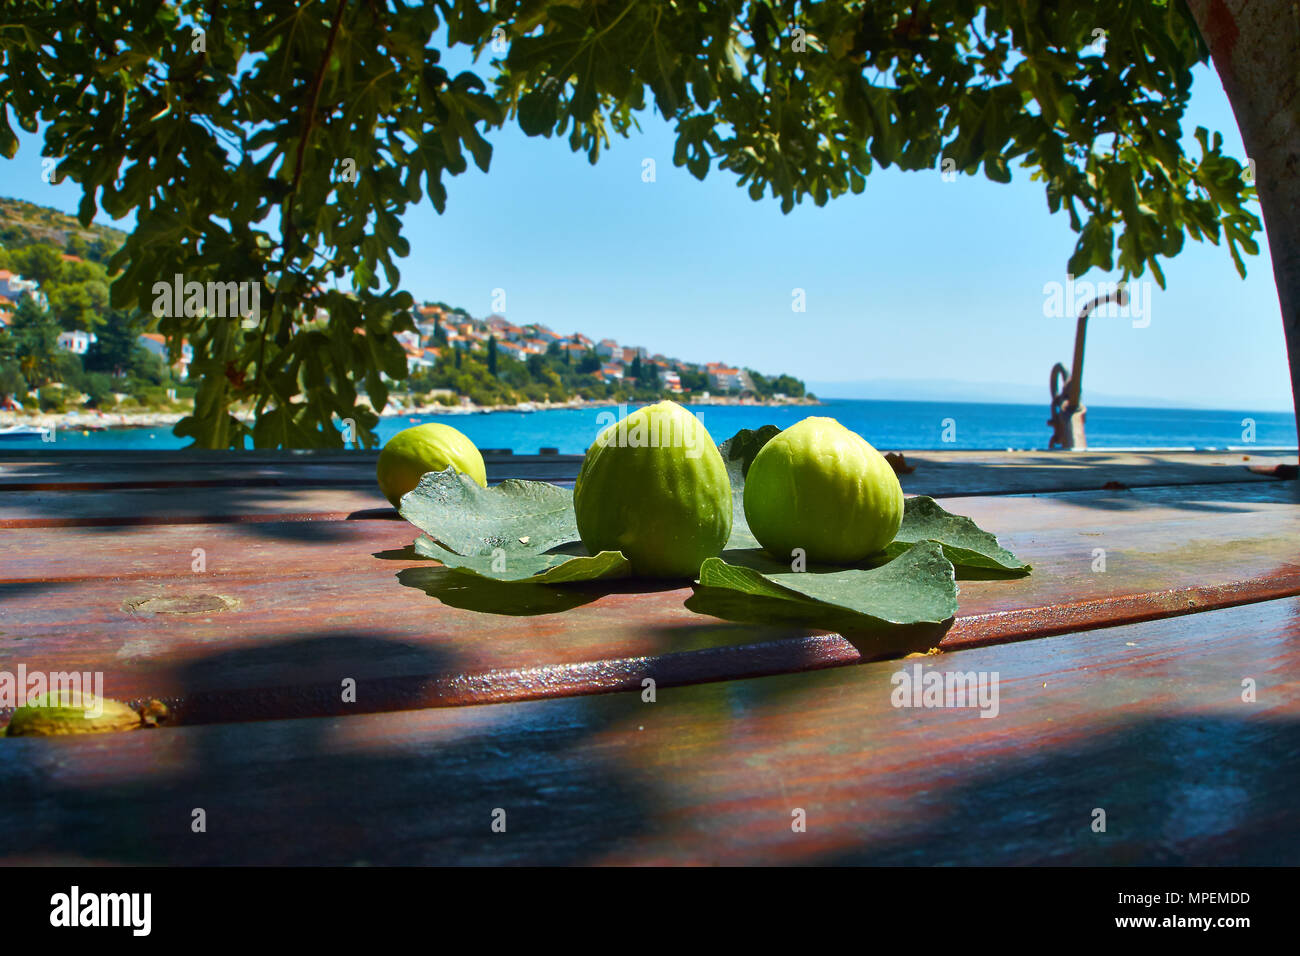 Fig on a table beneath a tree and the Croatian coast and Adriatic sea in the background. Panorama. - Stock Image